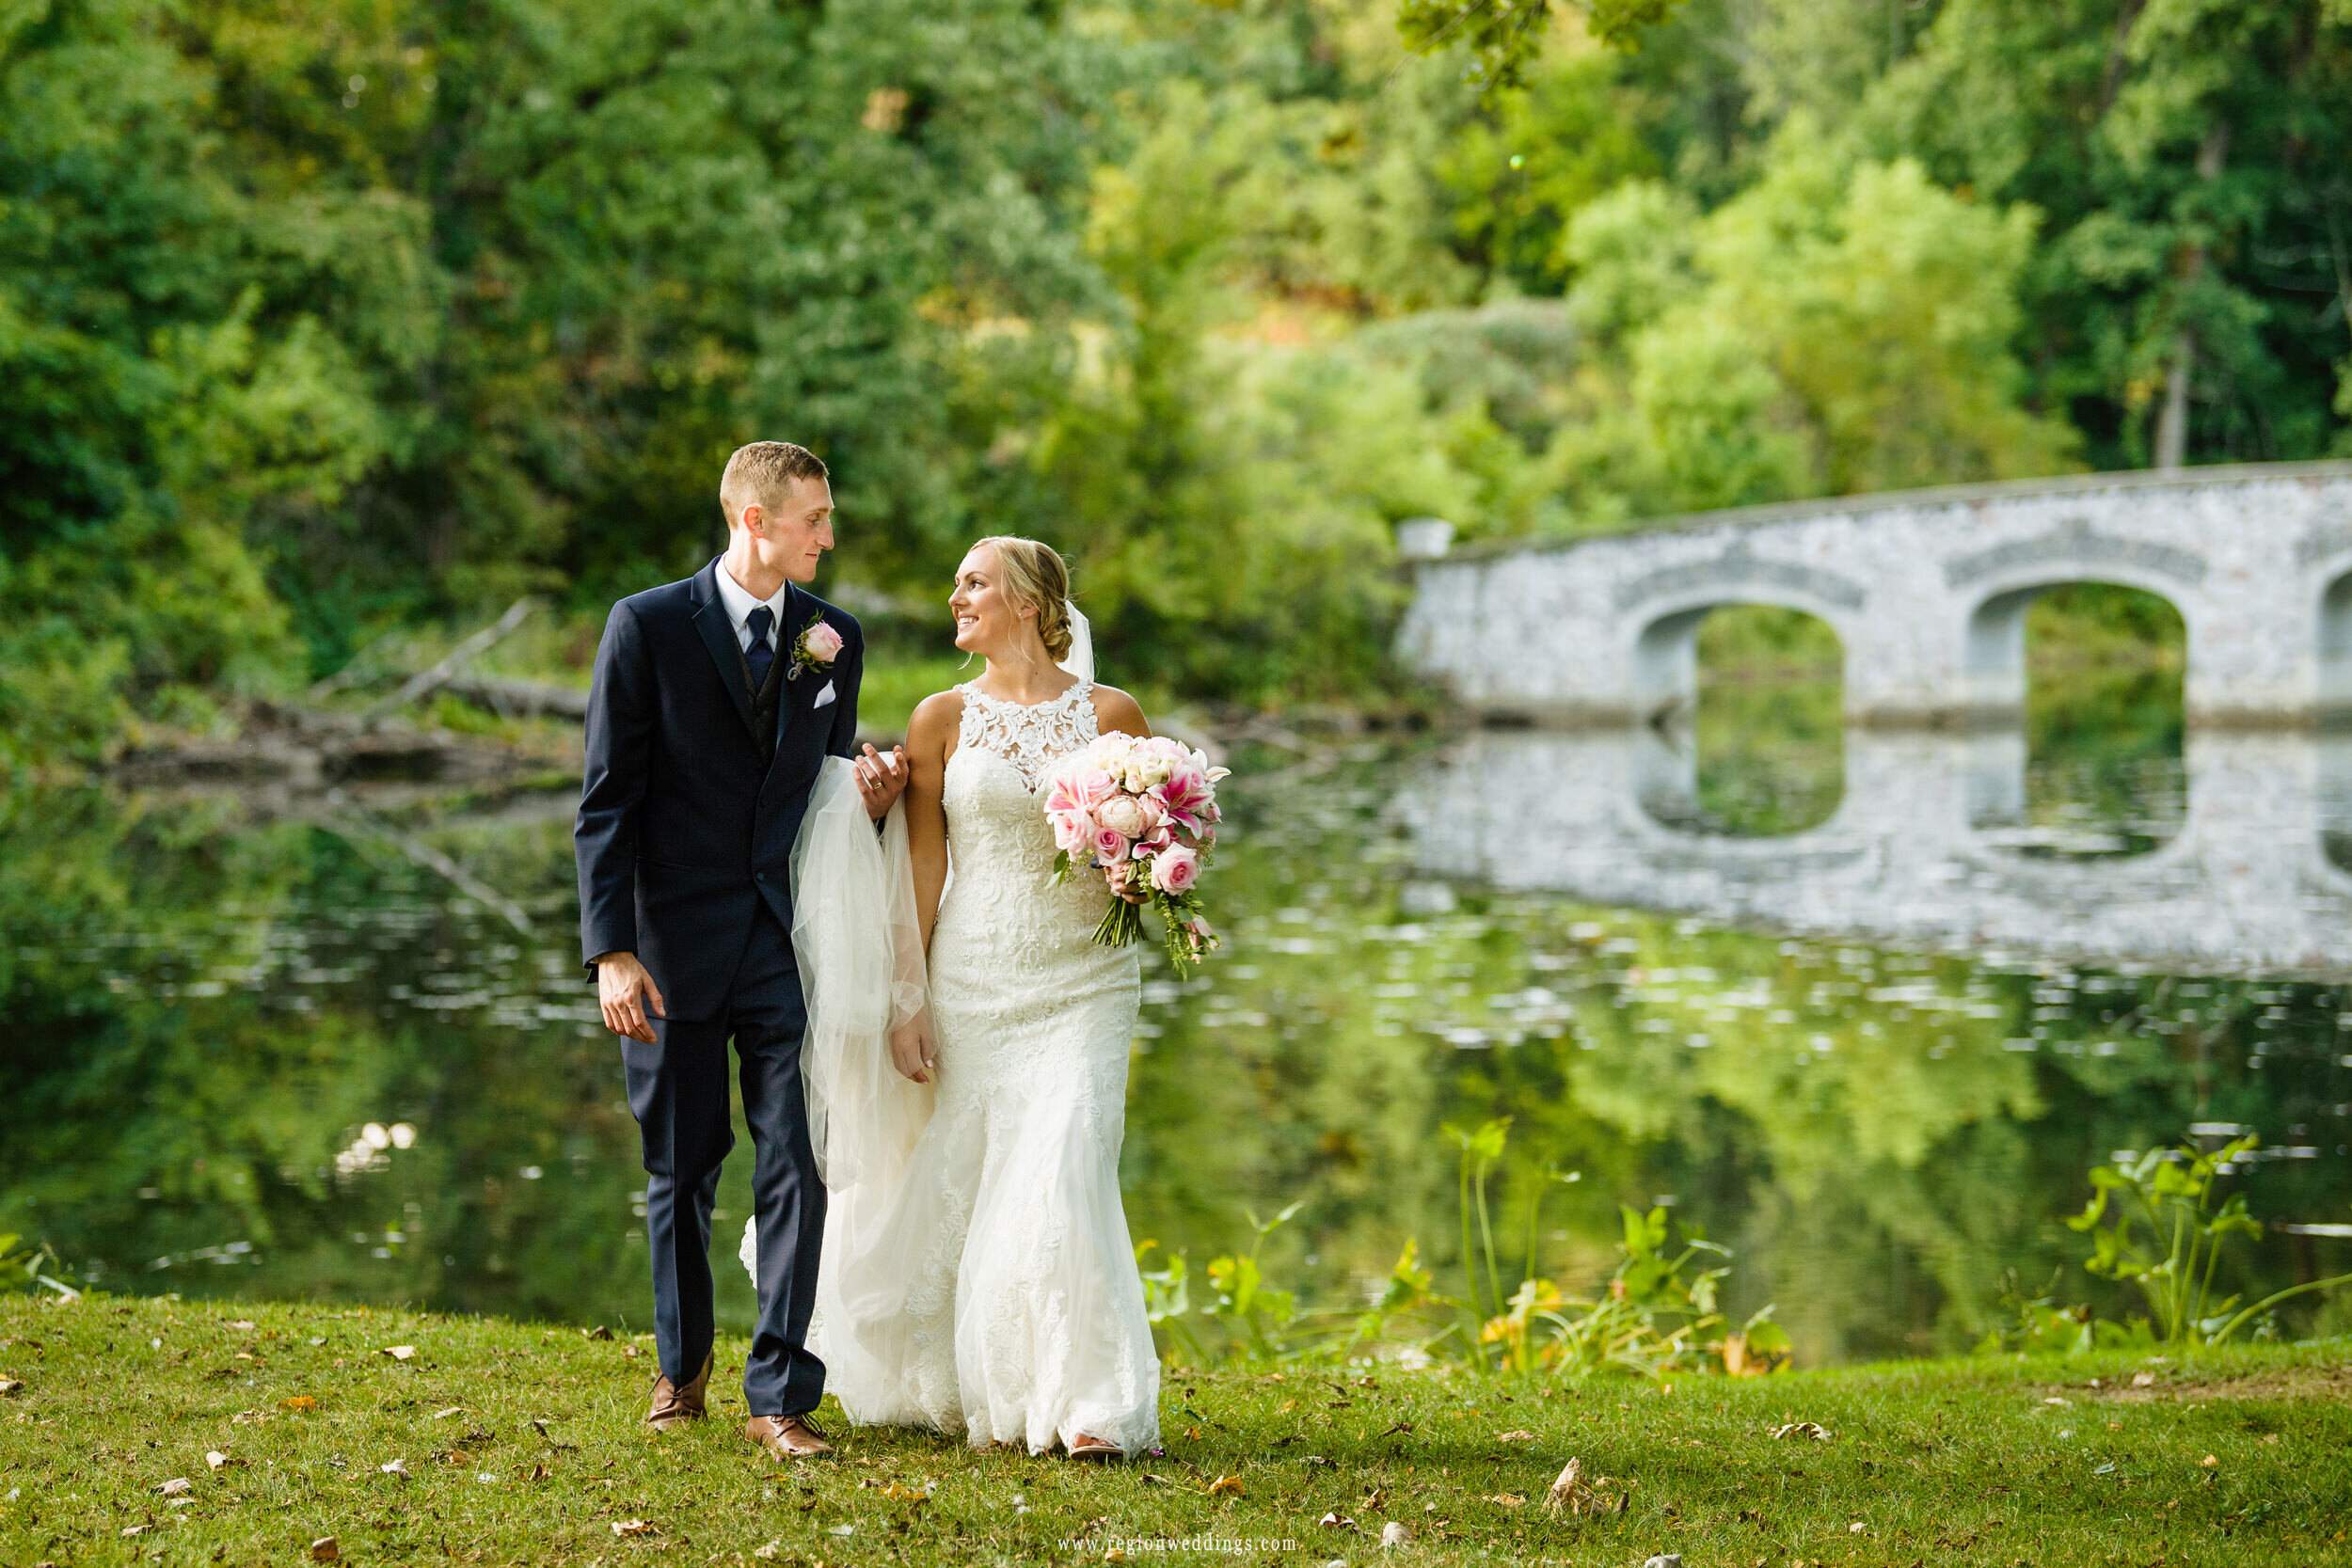 Bride and groom take a casual walk near the bridge in Aberdeen neighborhood in Valparaiso, Indiana.